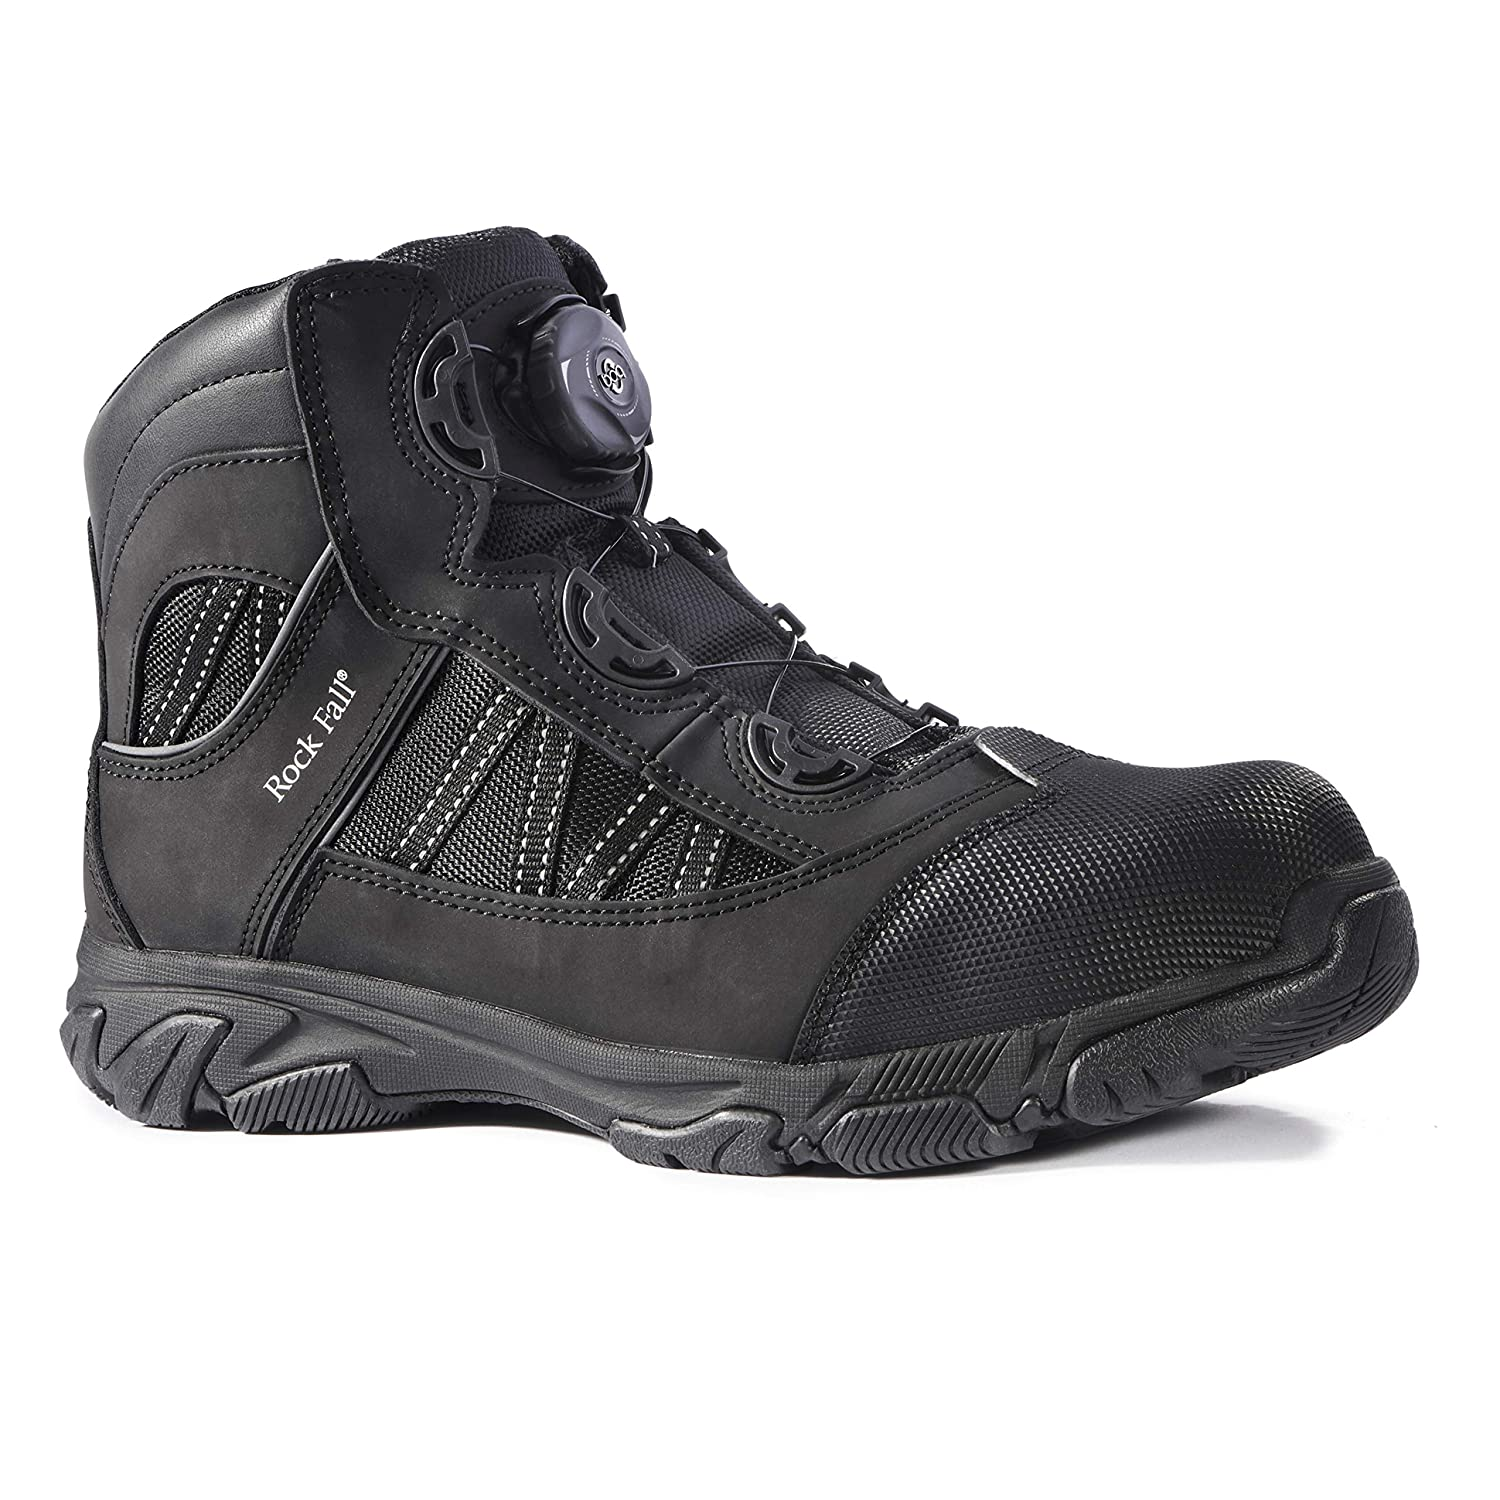 32e500f4a75 Rock Fall Ohm RF160 SB SRC EH Black Electrical Hazard Boa Lace Safety Boots  PPE